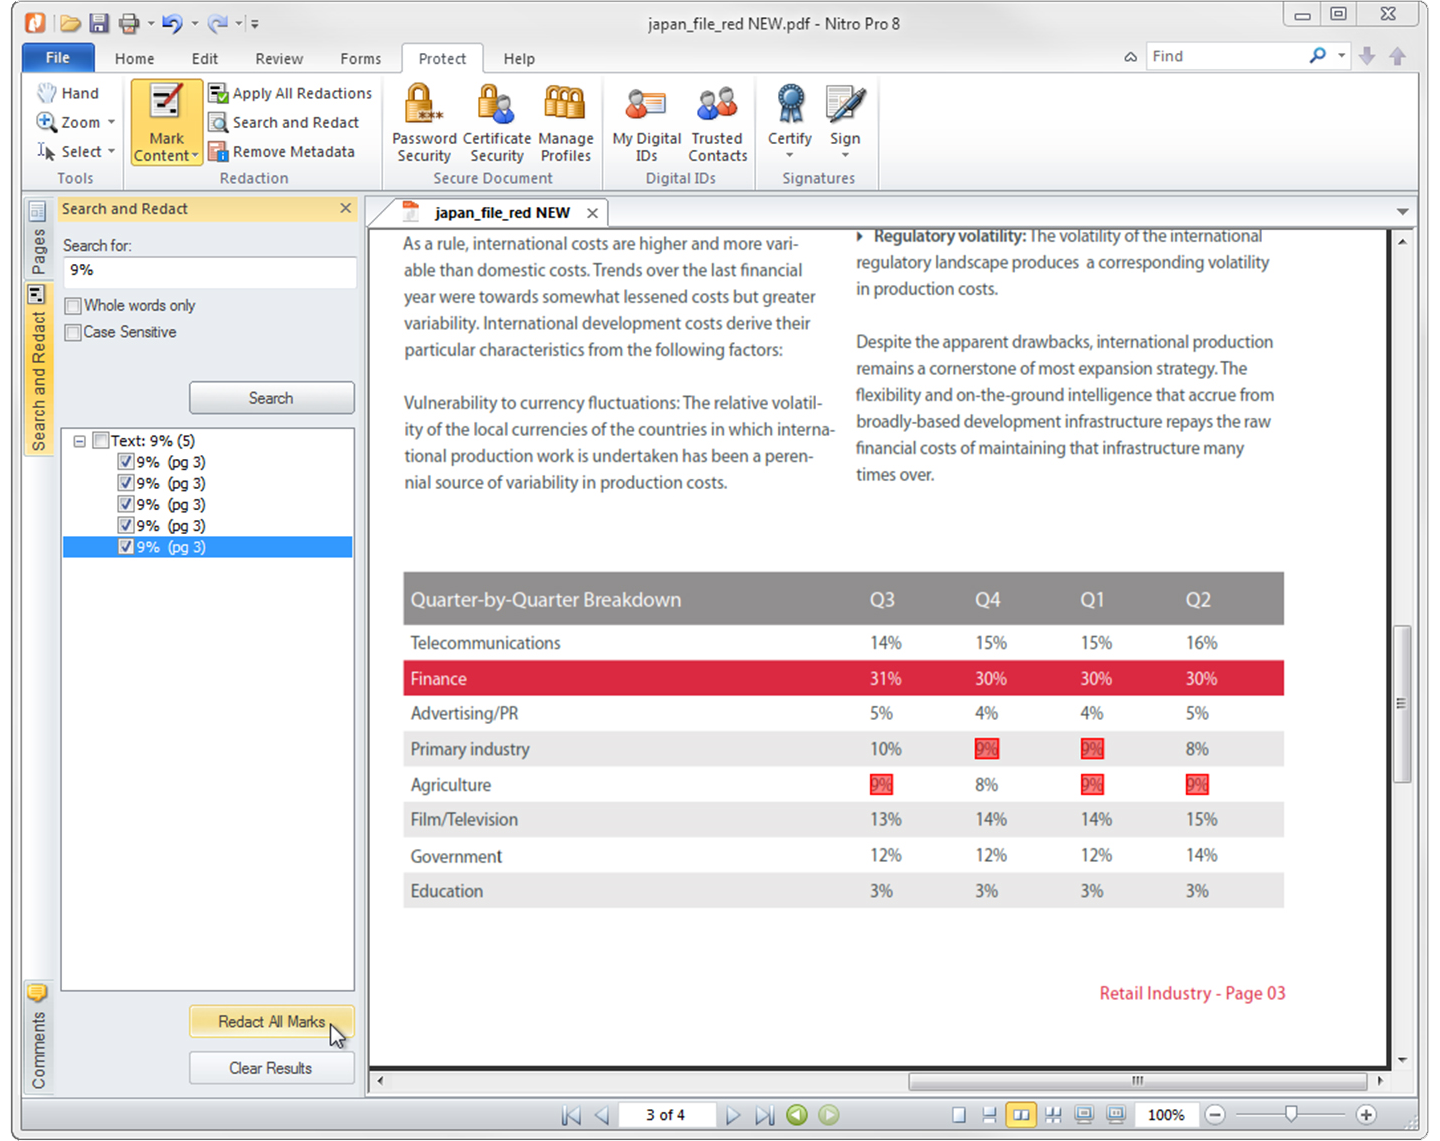 Nitro Pro 8, PDF Utilities Software Screenshot